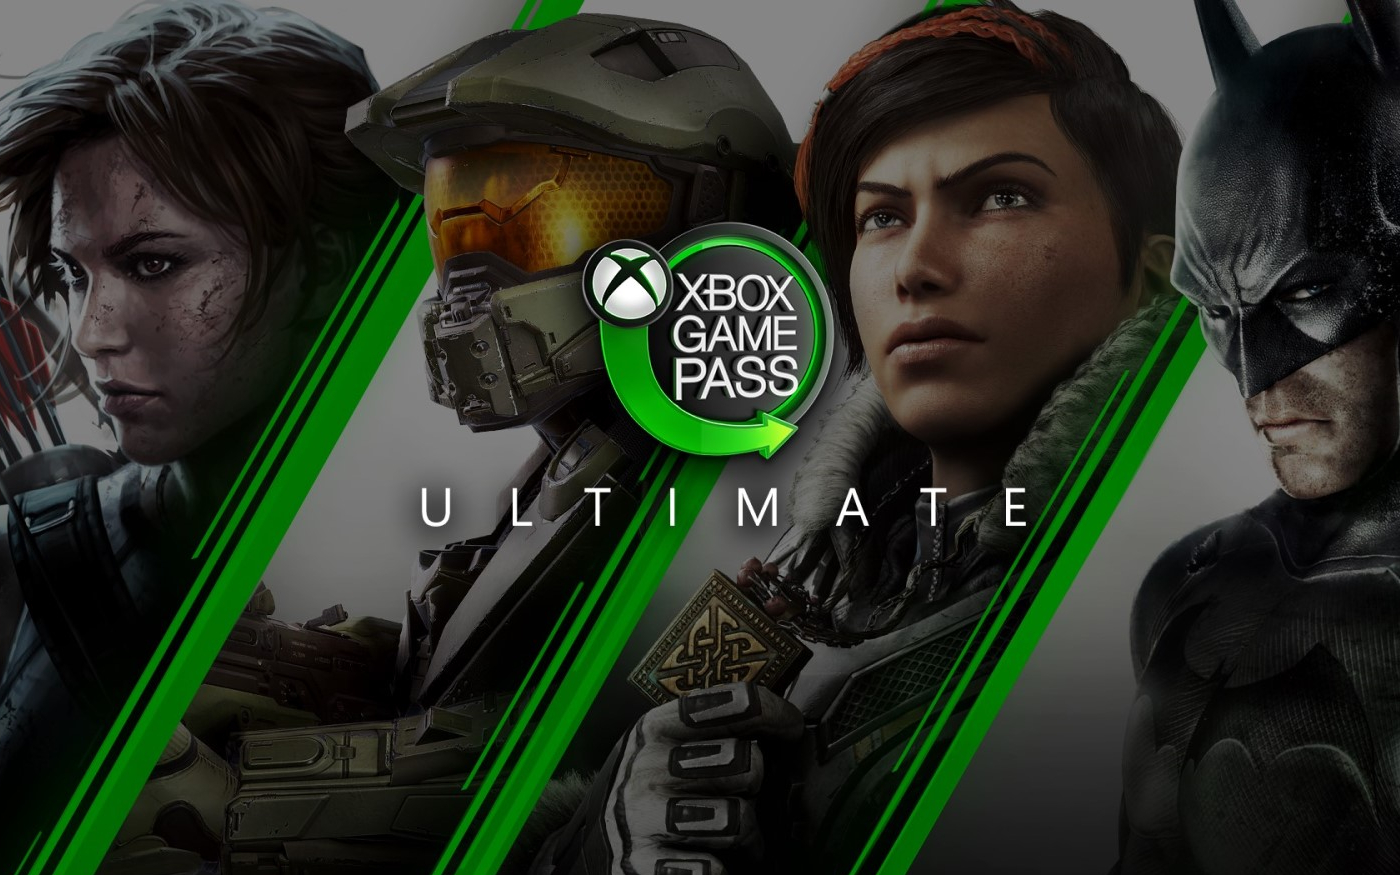 Microsoft cobra R$1,00 pela assinatura de 3 meses do Xbox Game Pass Ultimate